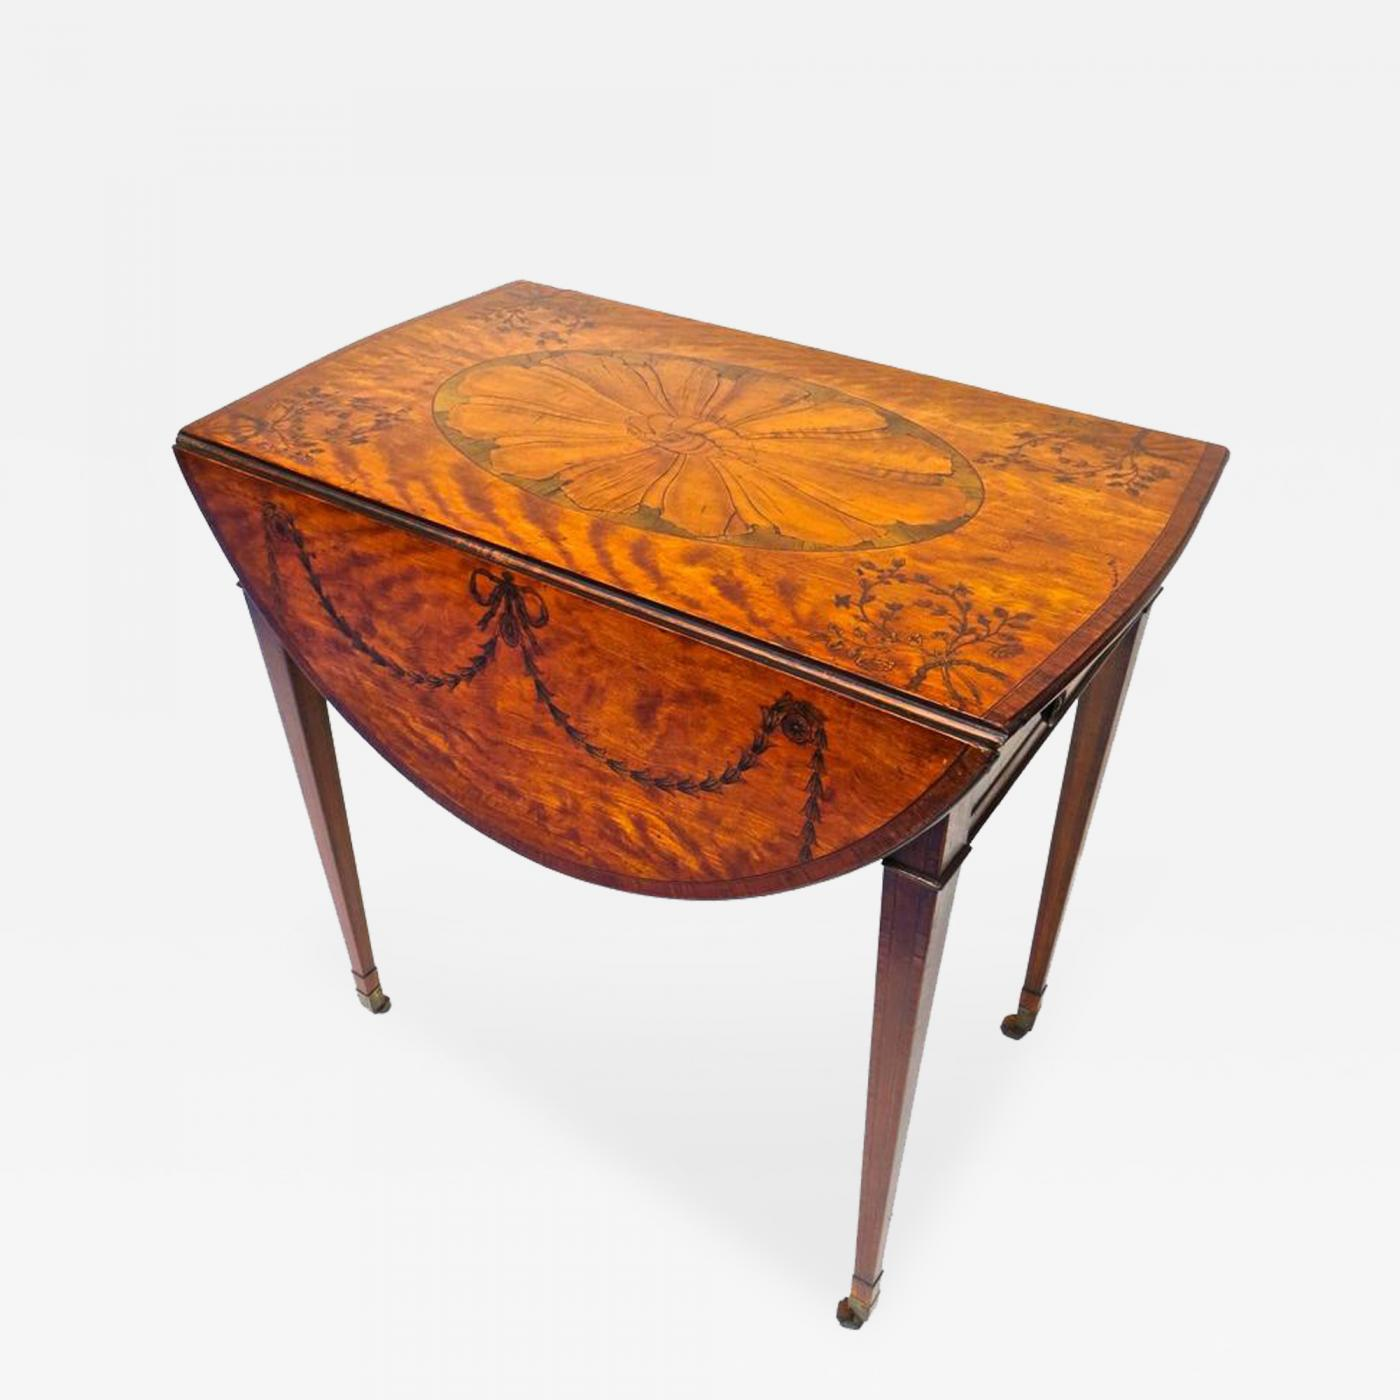 Mayhew Ince Fine George III Marquetry Inlaid Pembroke Table Attributed  Mayhew Ince C1775